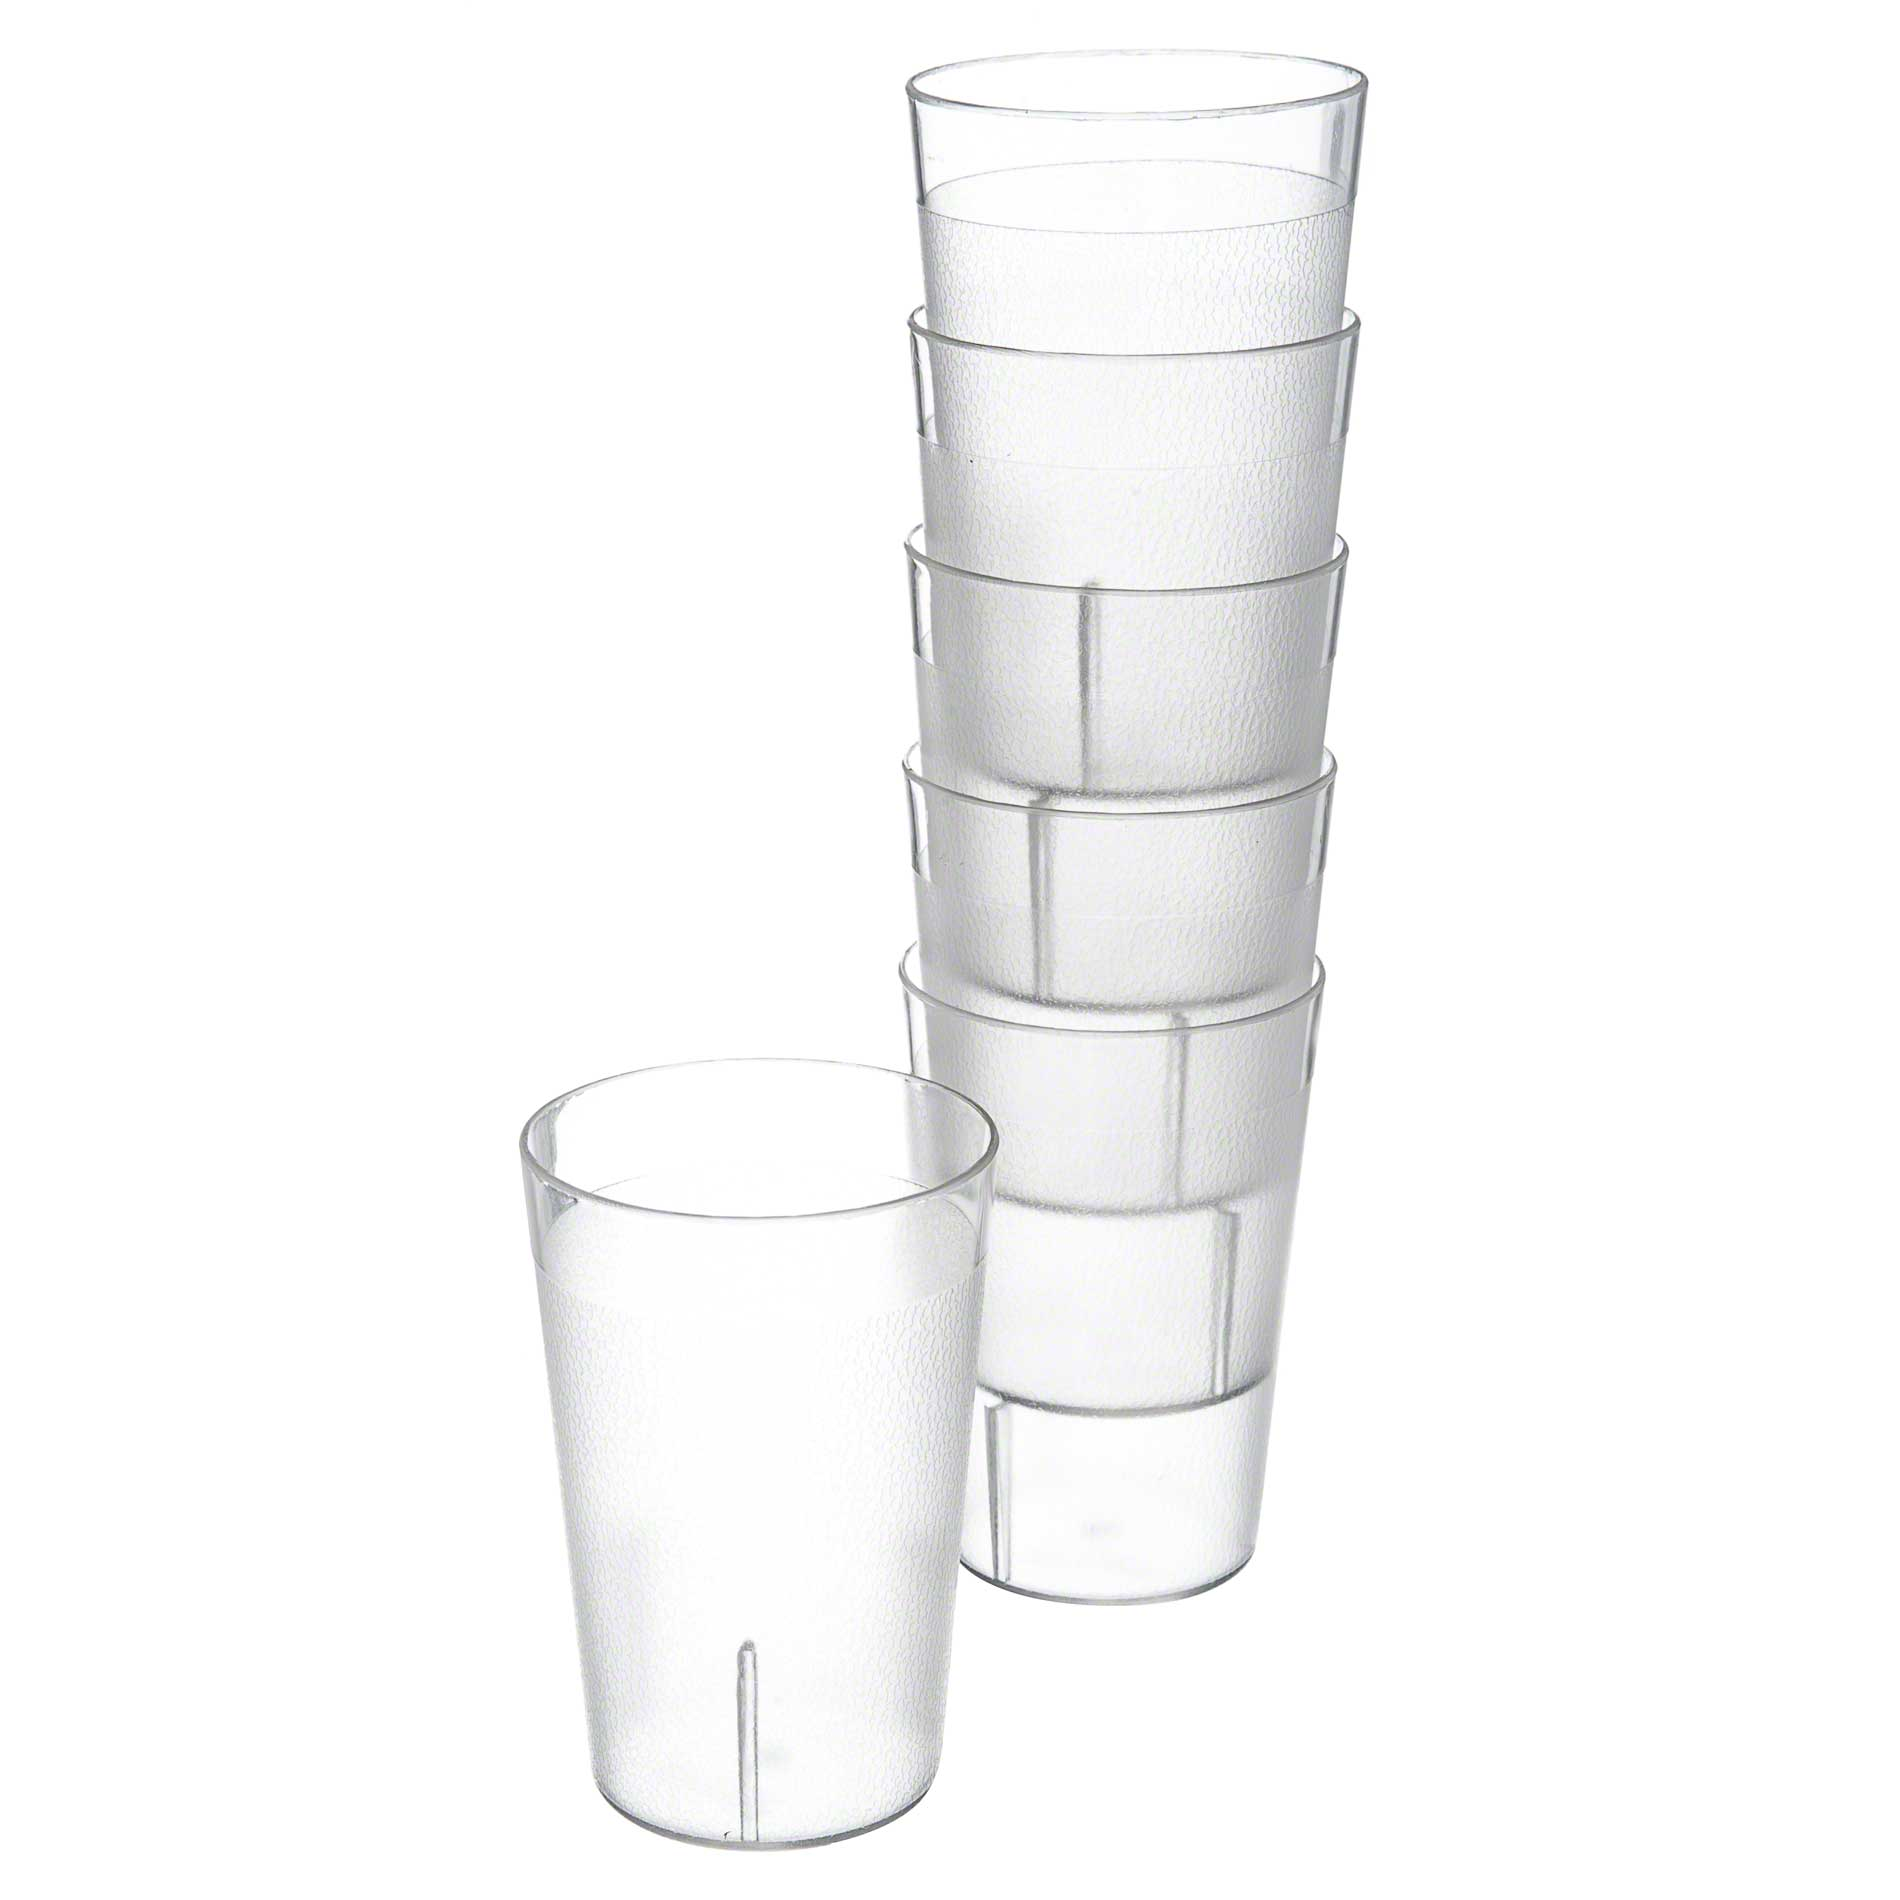 Kids tumbler 8 oz clear acrylic stackable - Cups and kids ...